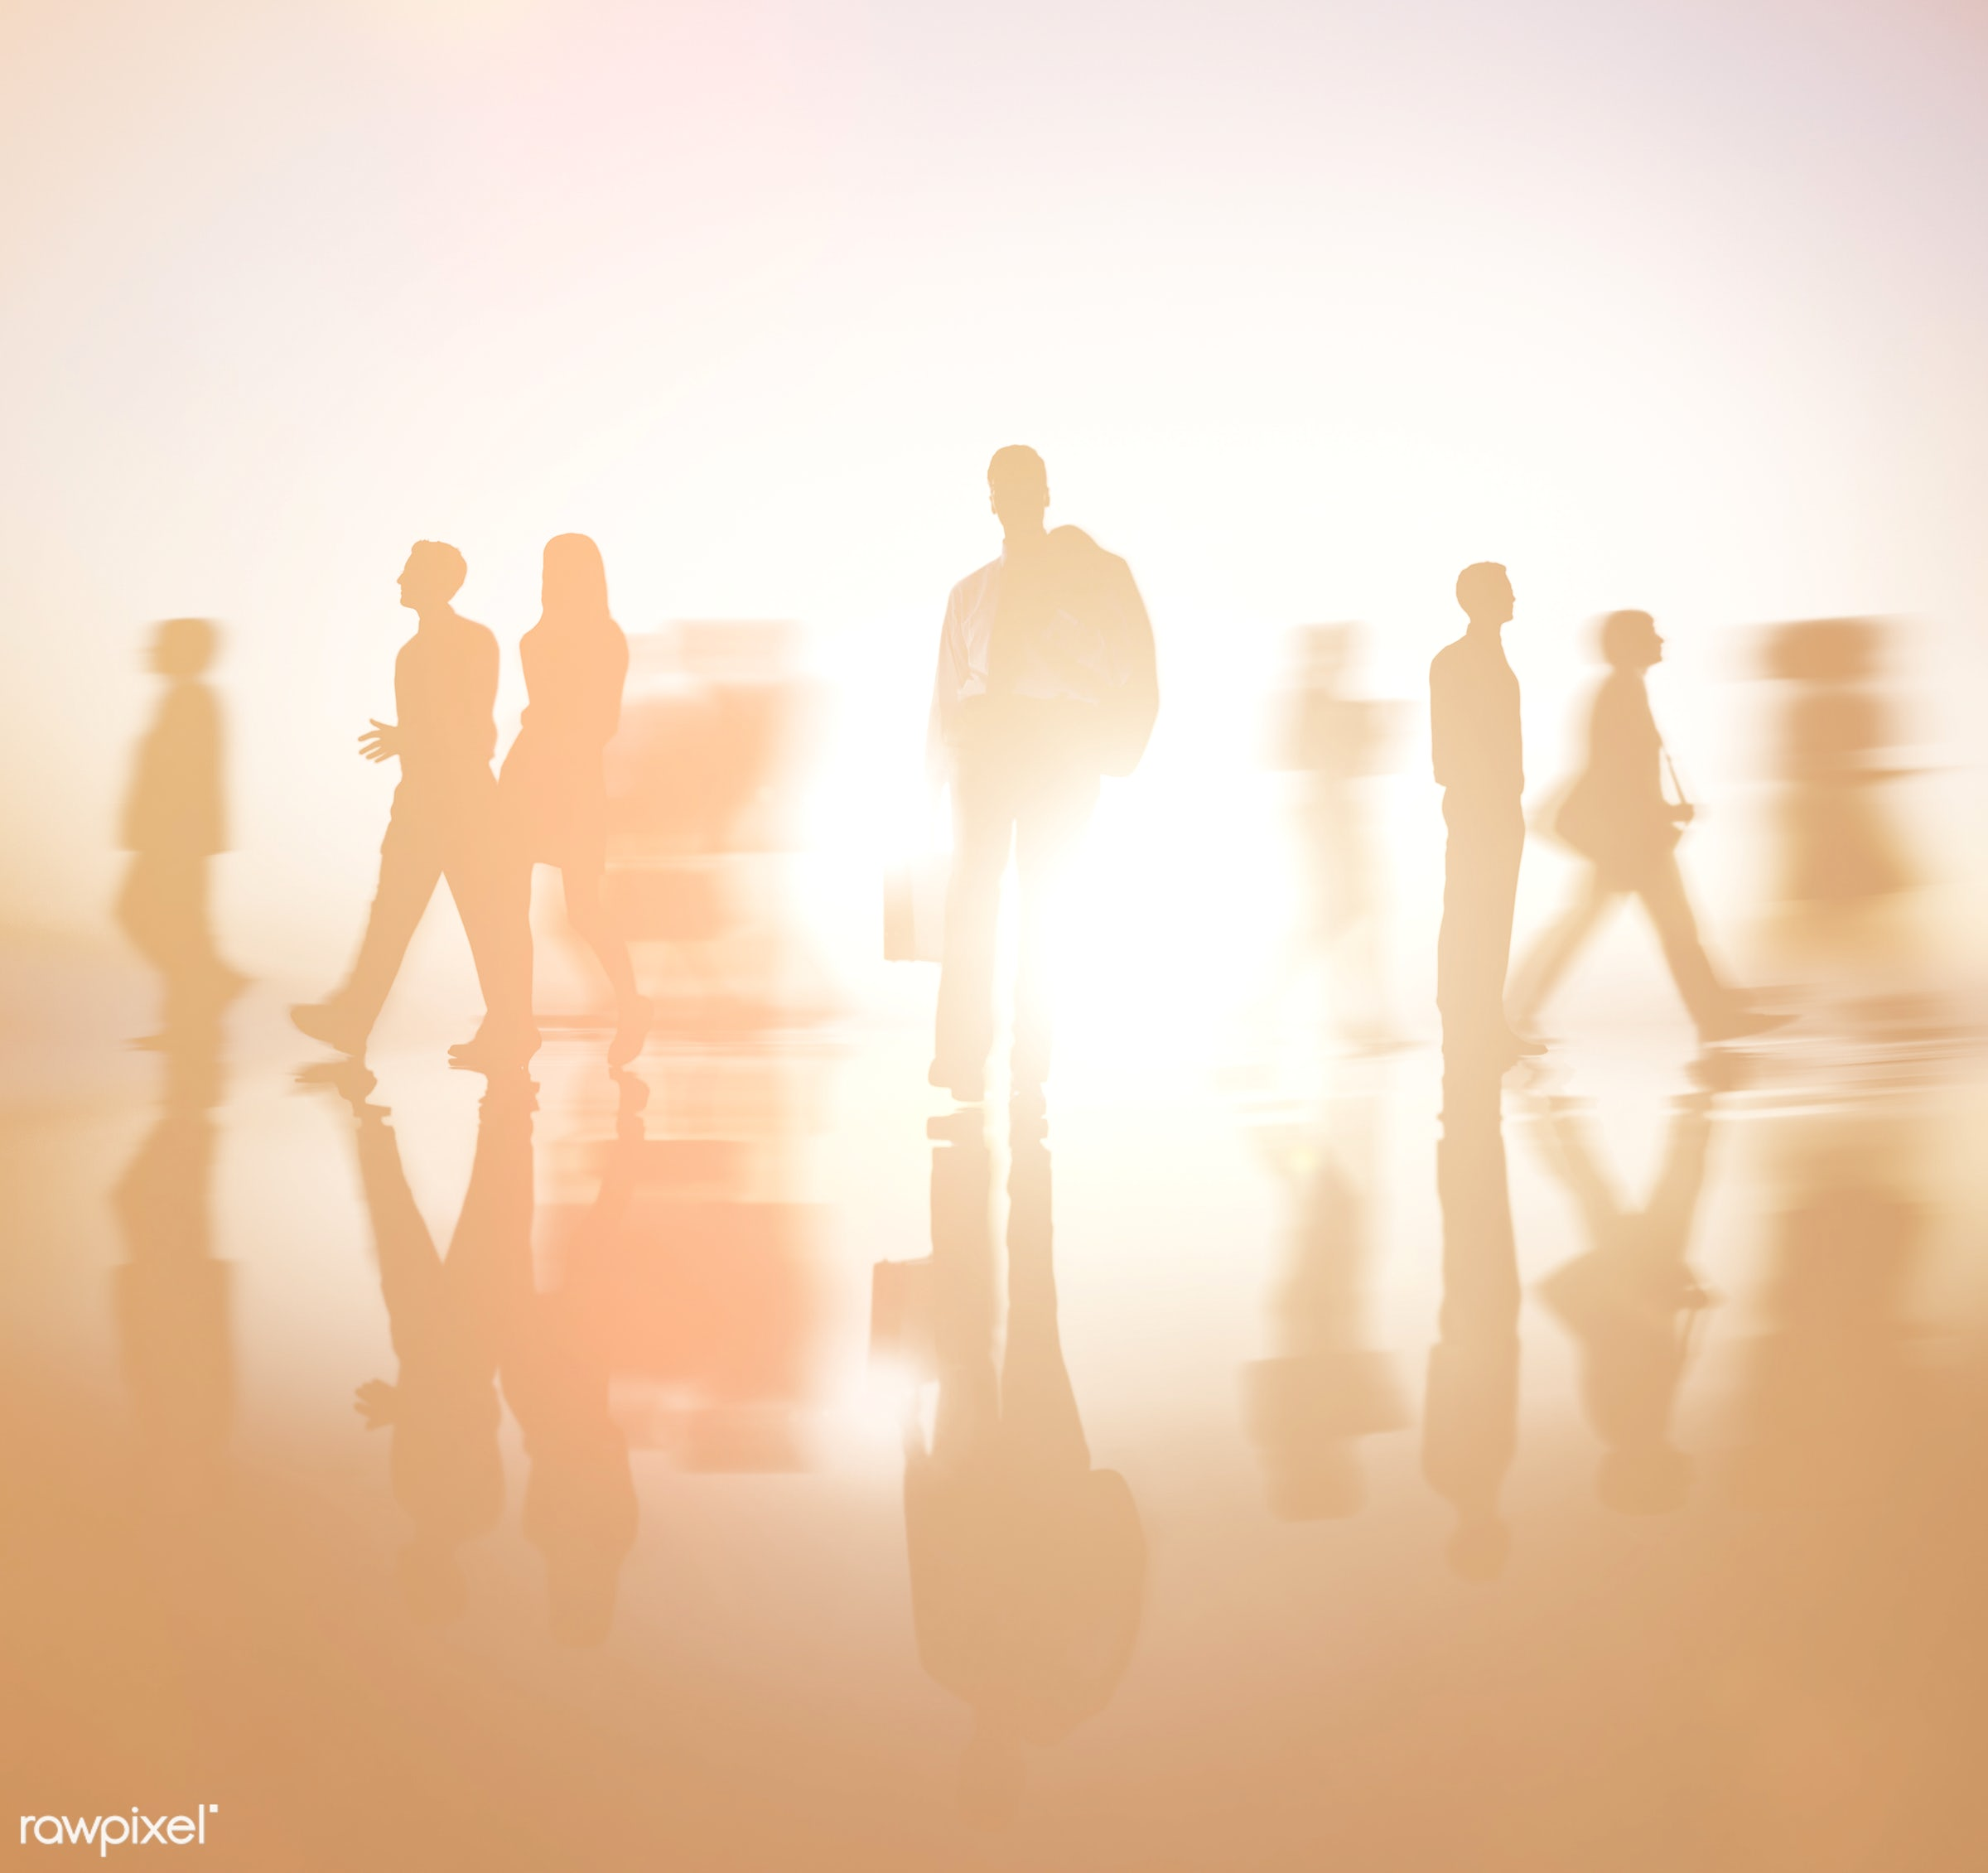 adult, blurred motion, briefcase, business, business people, business person, businessman, businesswoman, busy, ceo,...